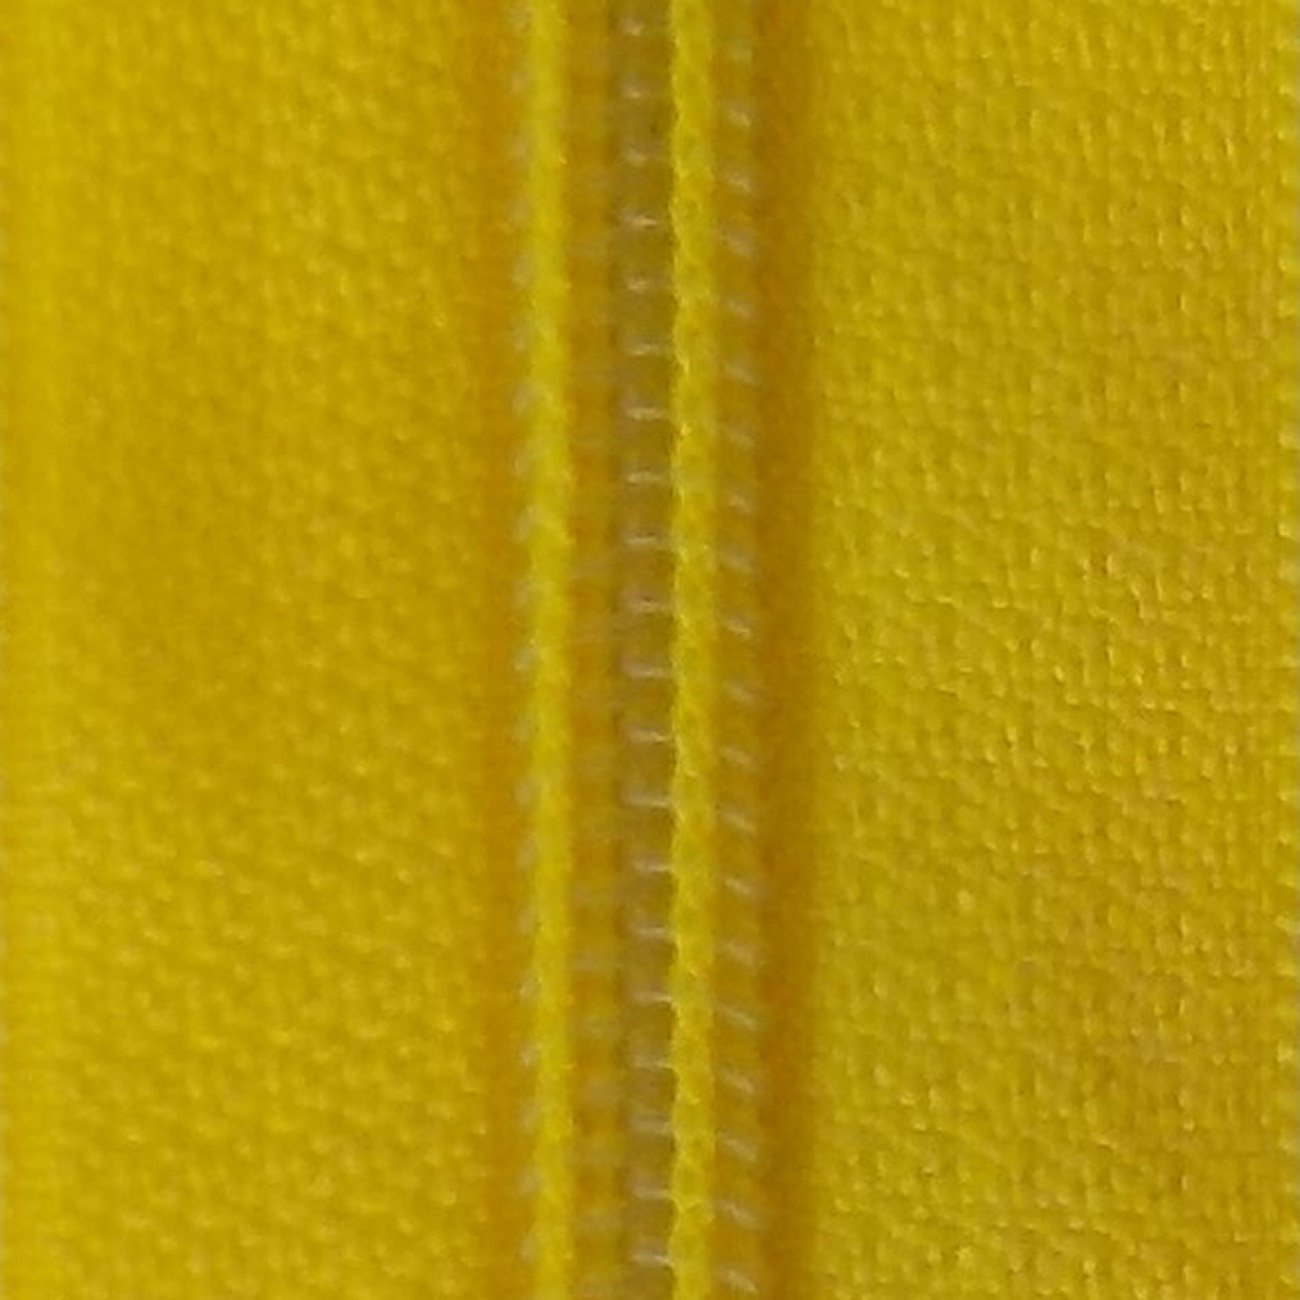 30 Double Pull Non Separating Zipper Maize